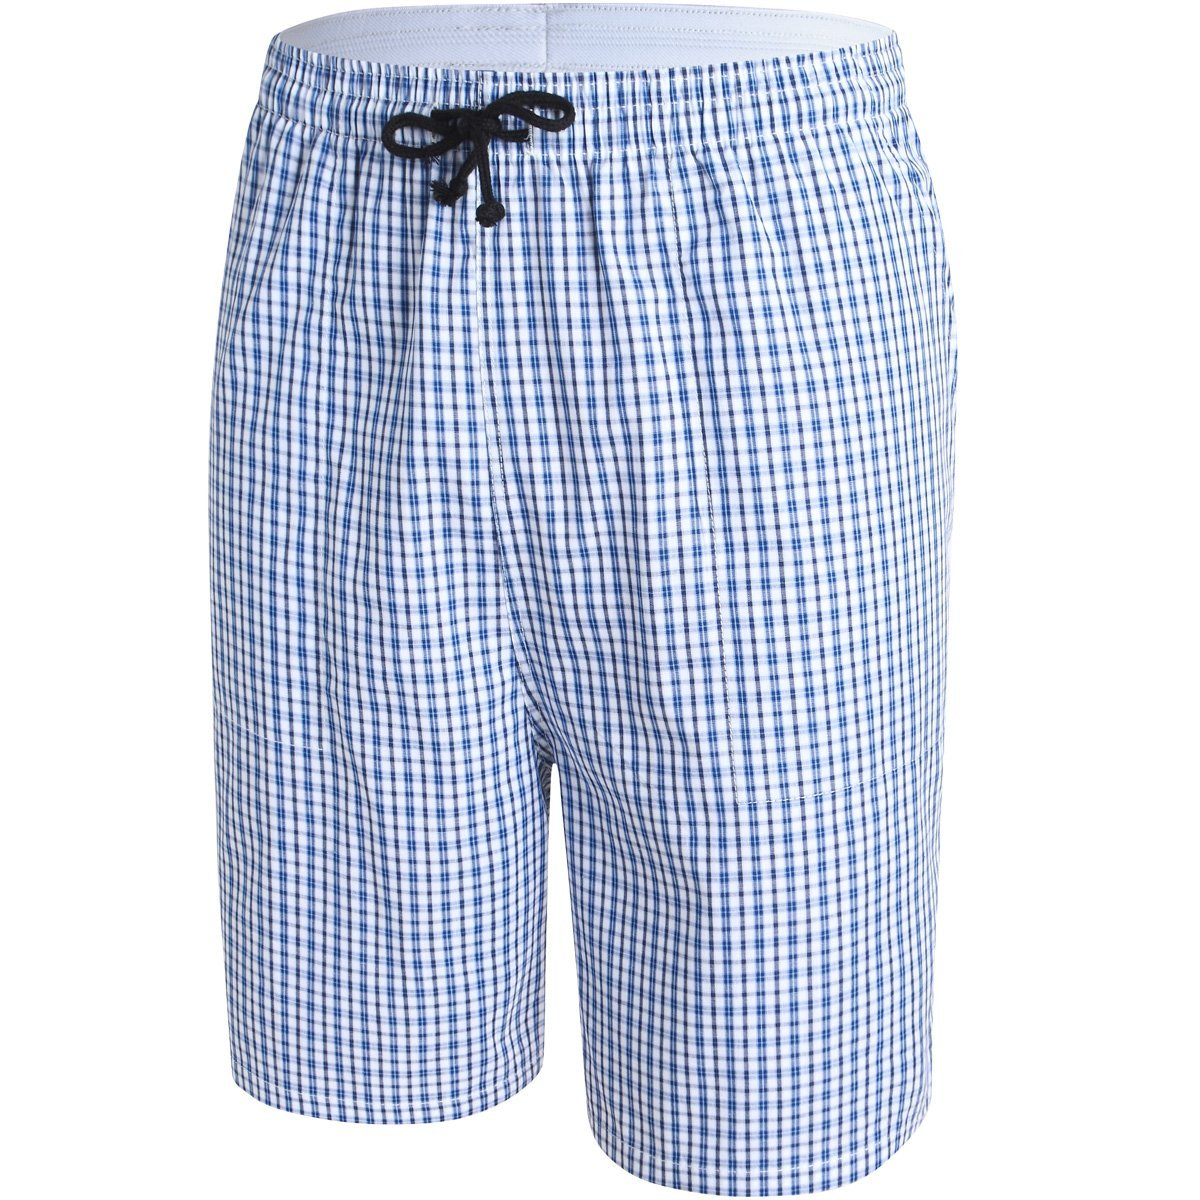 JINSHI Mens Lounge/Sleep Shorts Plaid Poplin Woven 100% Cotton 3Pack 2XL by JINSHI (Image #1)